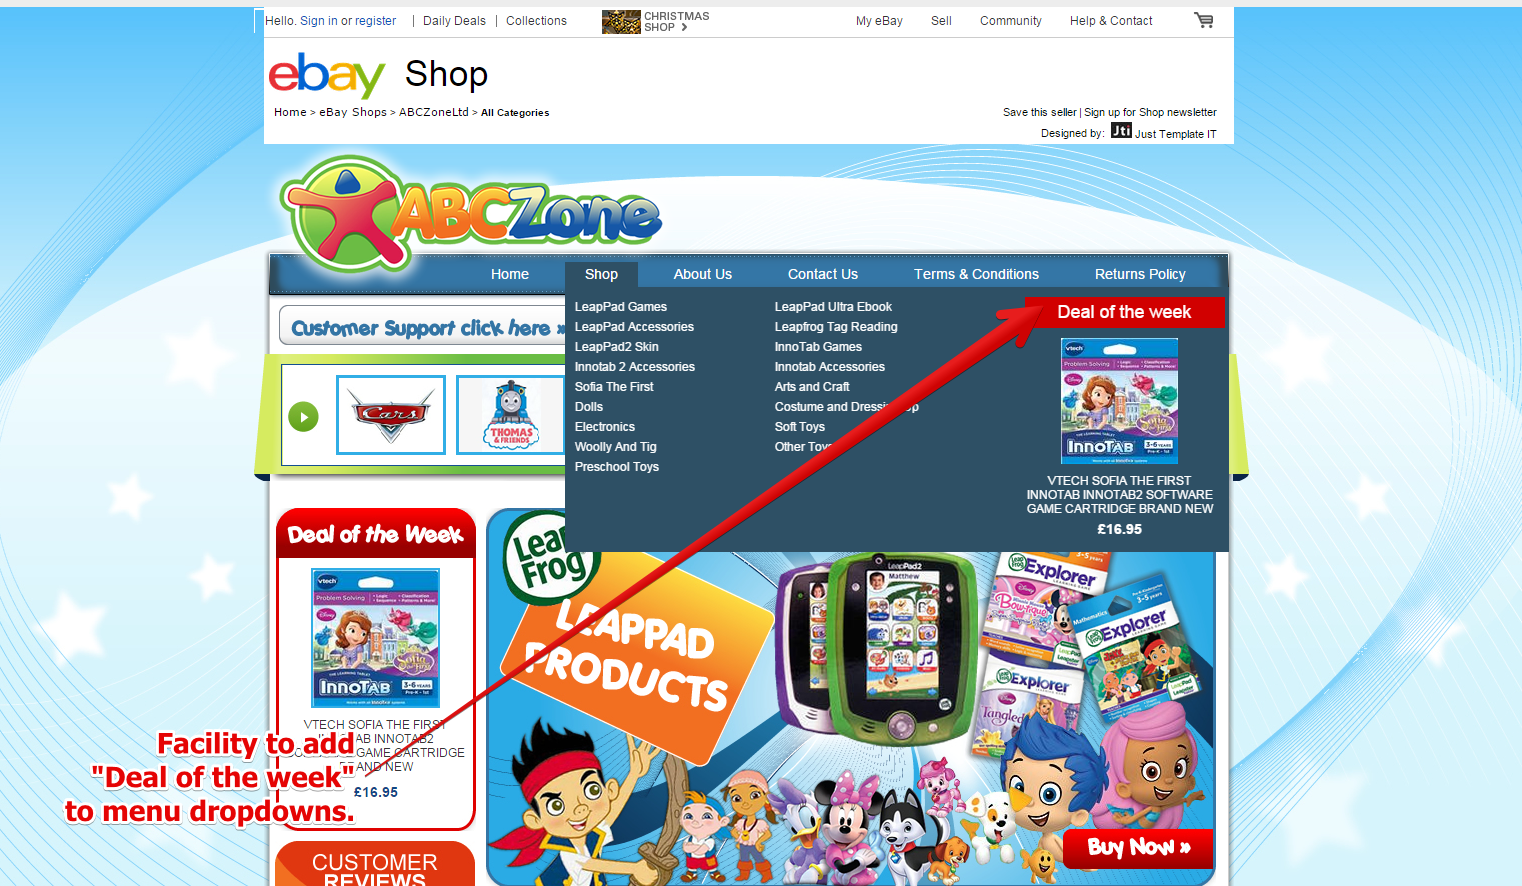 Add 'Deals of the week' per menu category emulating functionality seen on web carts.